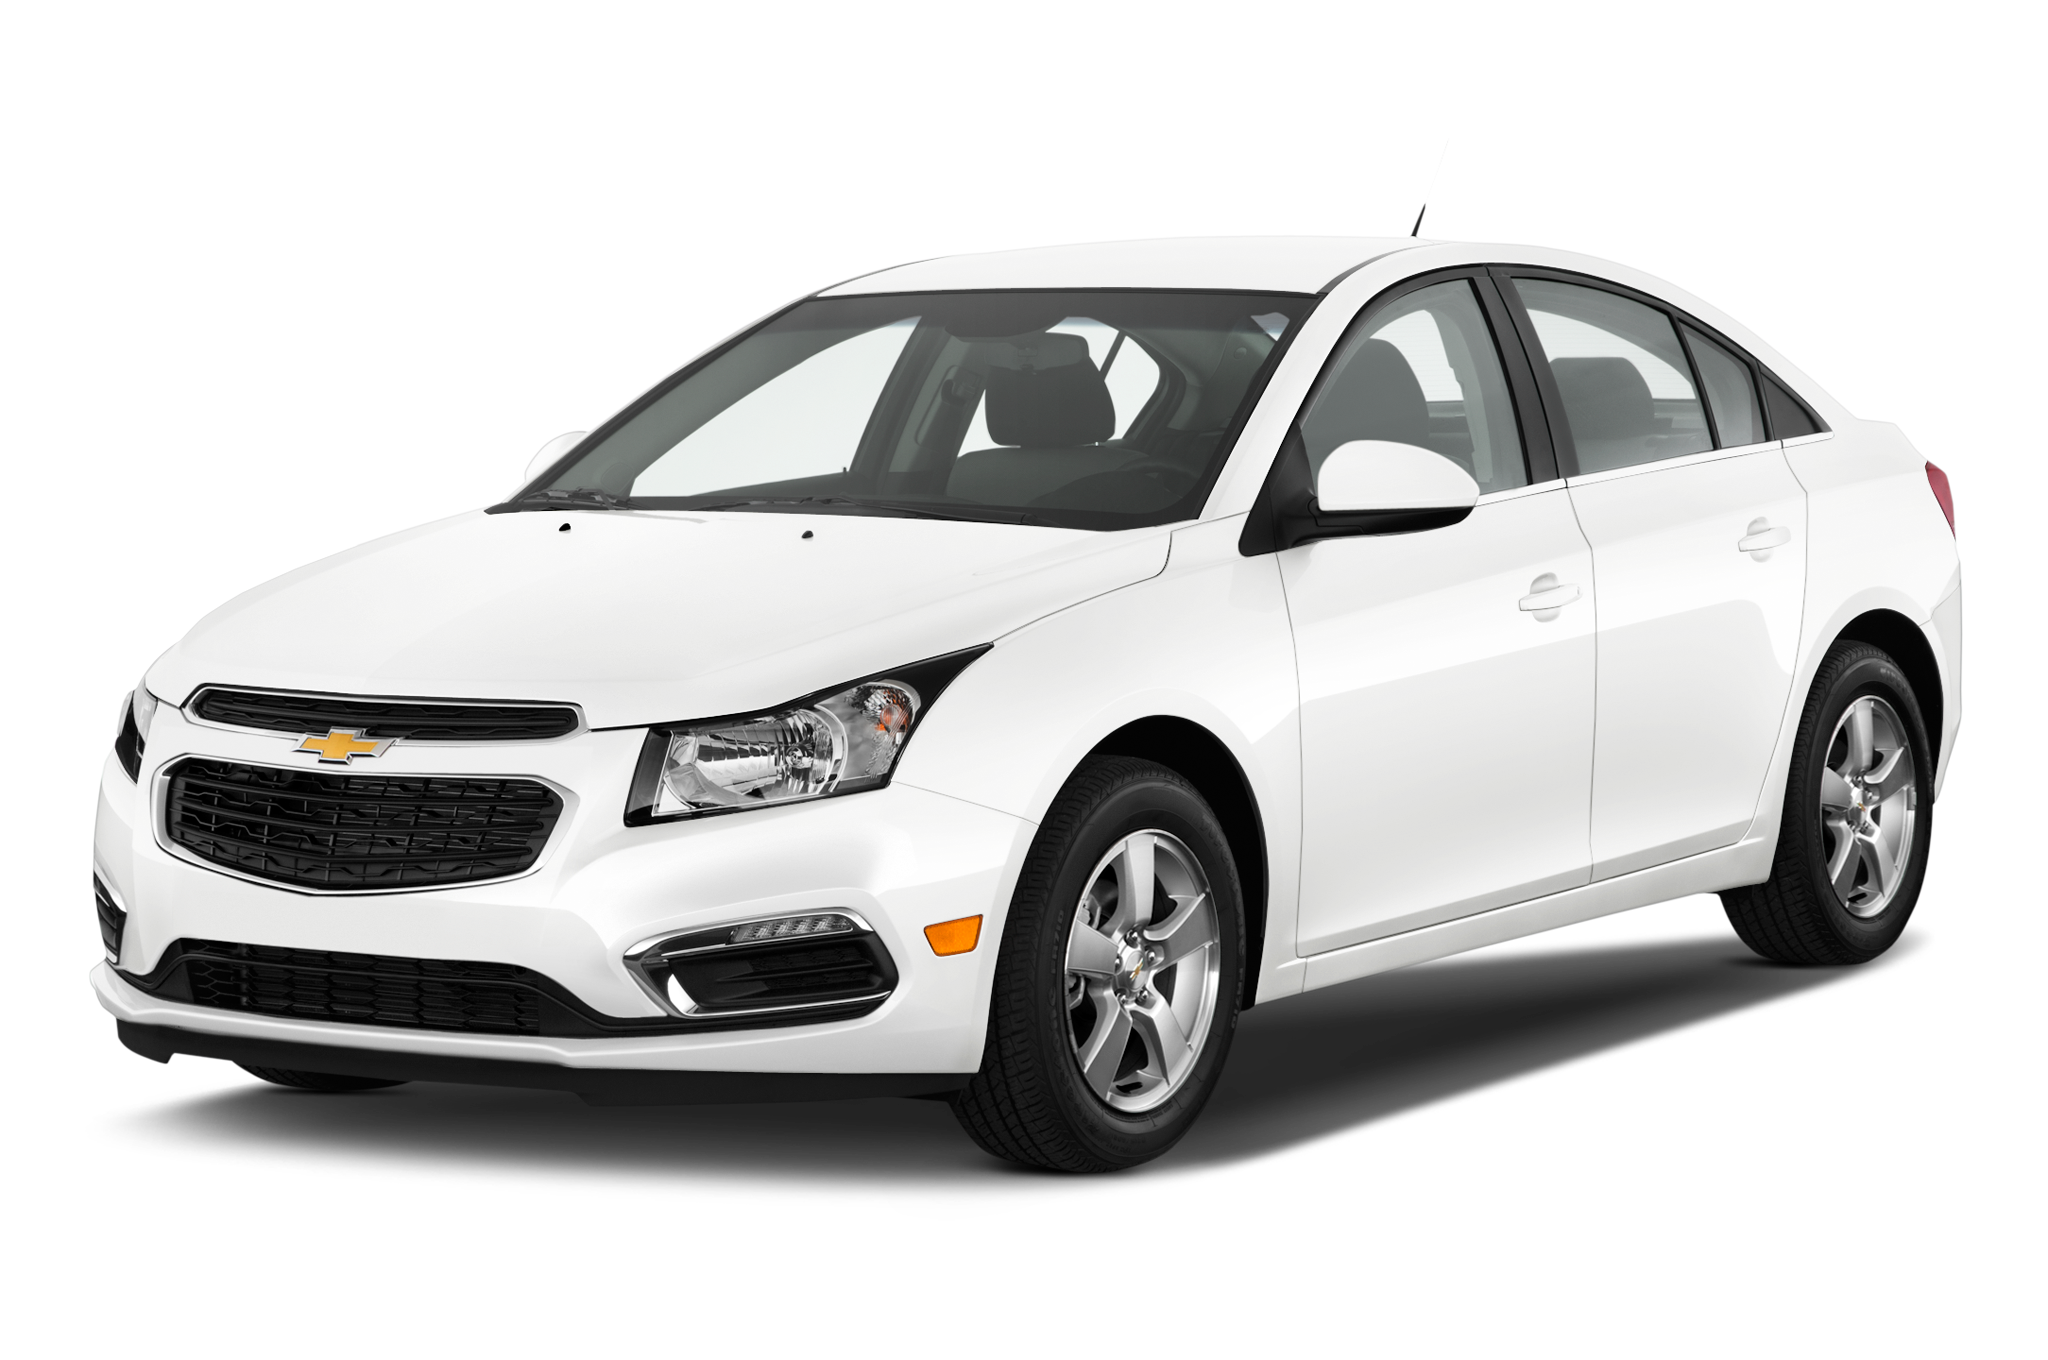 Chevrolet Cruze PNG Image.